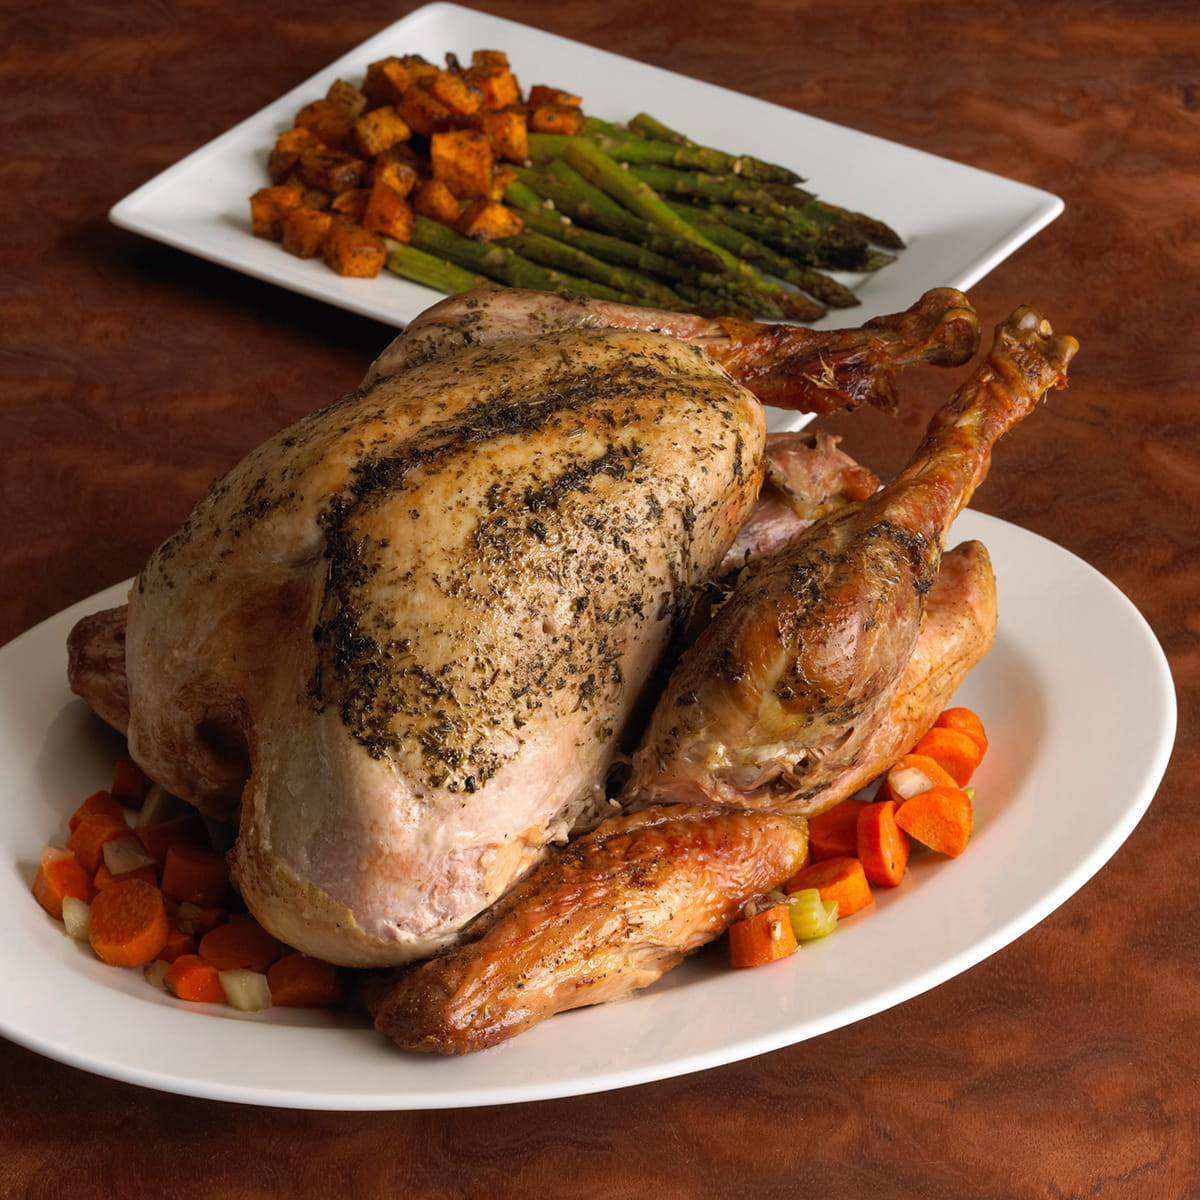 Moms Roasted Turkey with Butternut Squash and Asparagus